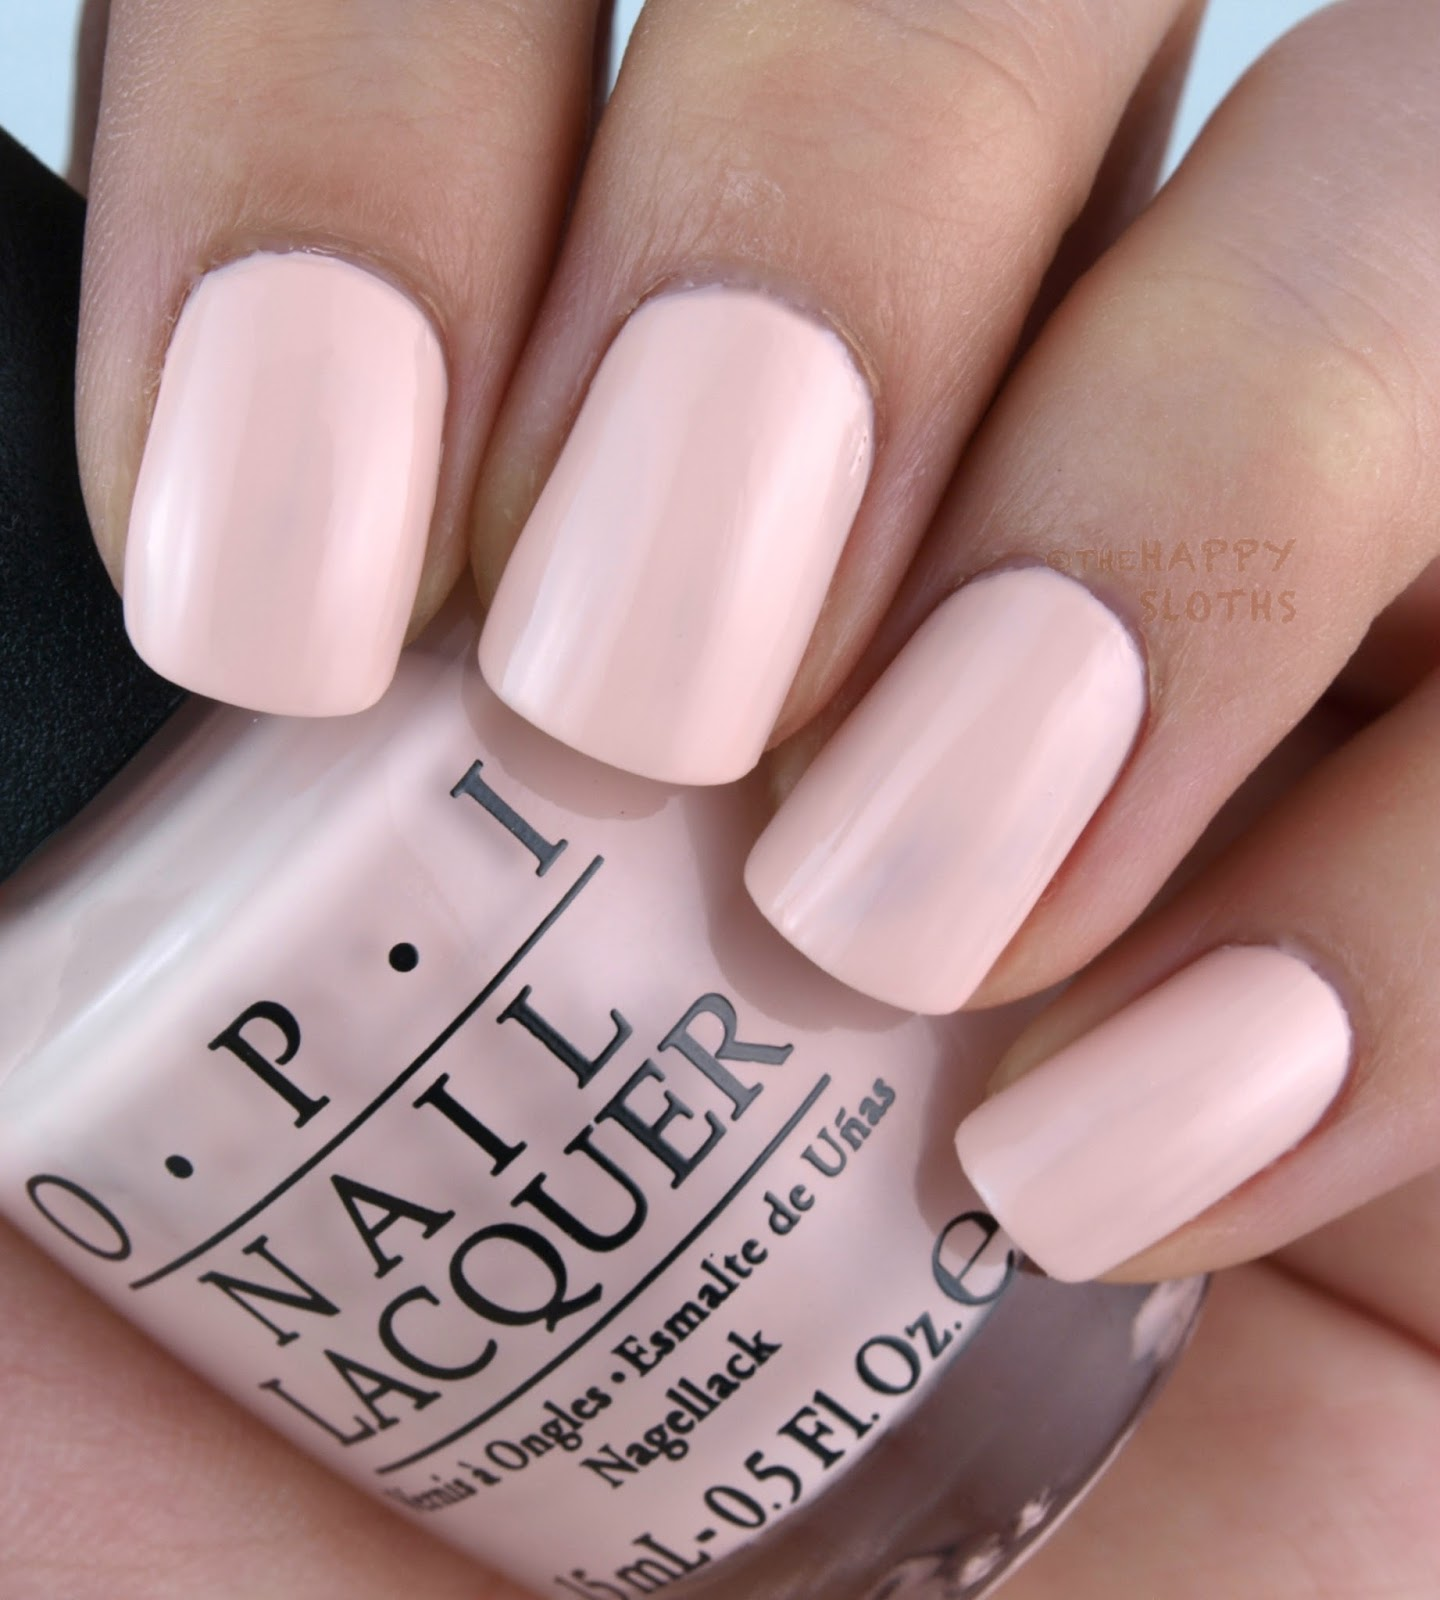 Can anyone recommend a pale/light pink nail polish... - Blogs & Forums